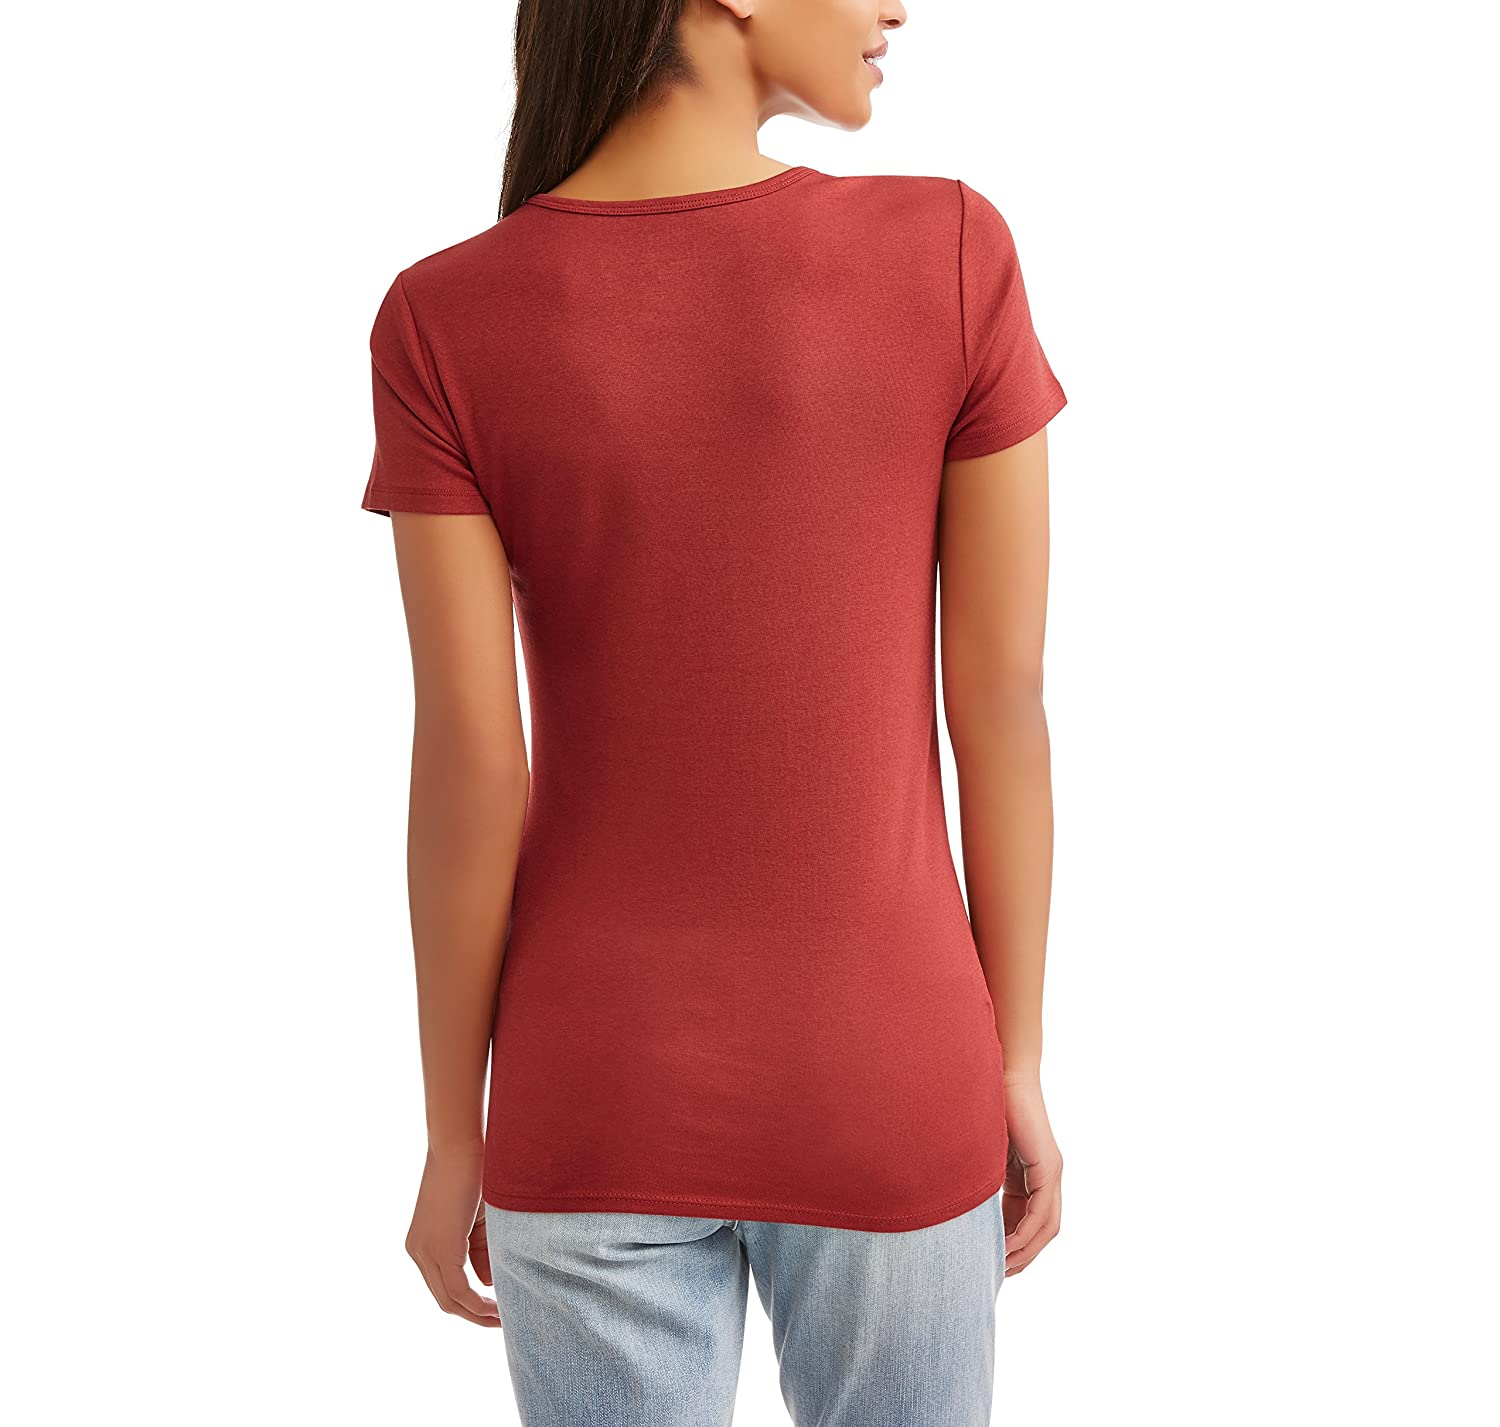 b85c43e8 TIME AND TRU Women Fitted Knit Top Size 2XL Solid Red Rum Short Sleeves  Crew Neck at Amazon Women's Clothing store: